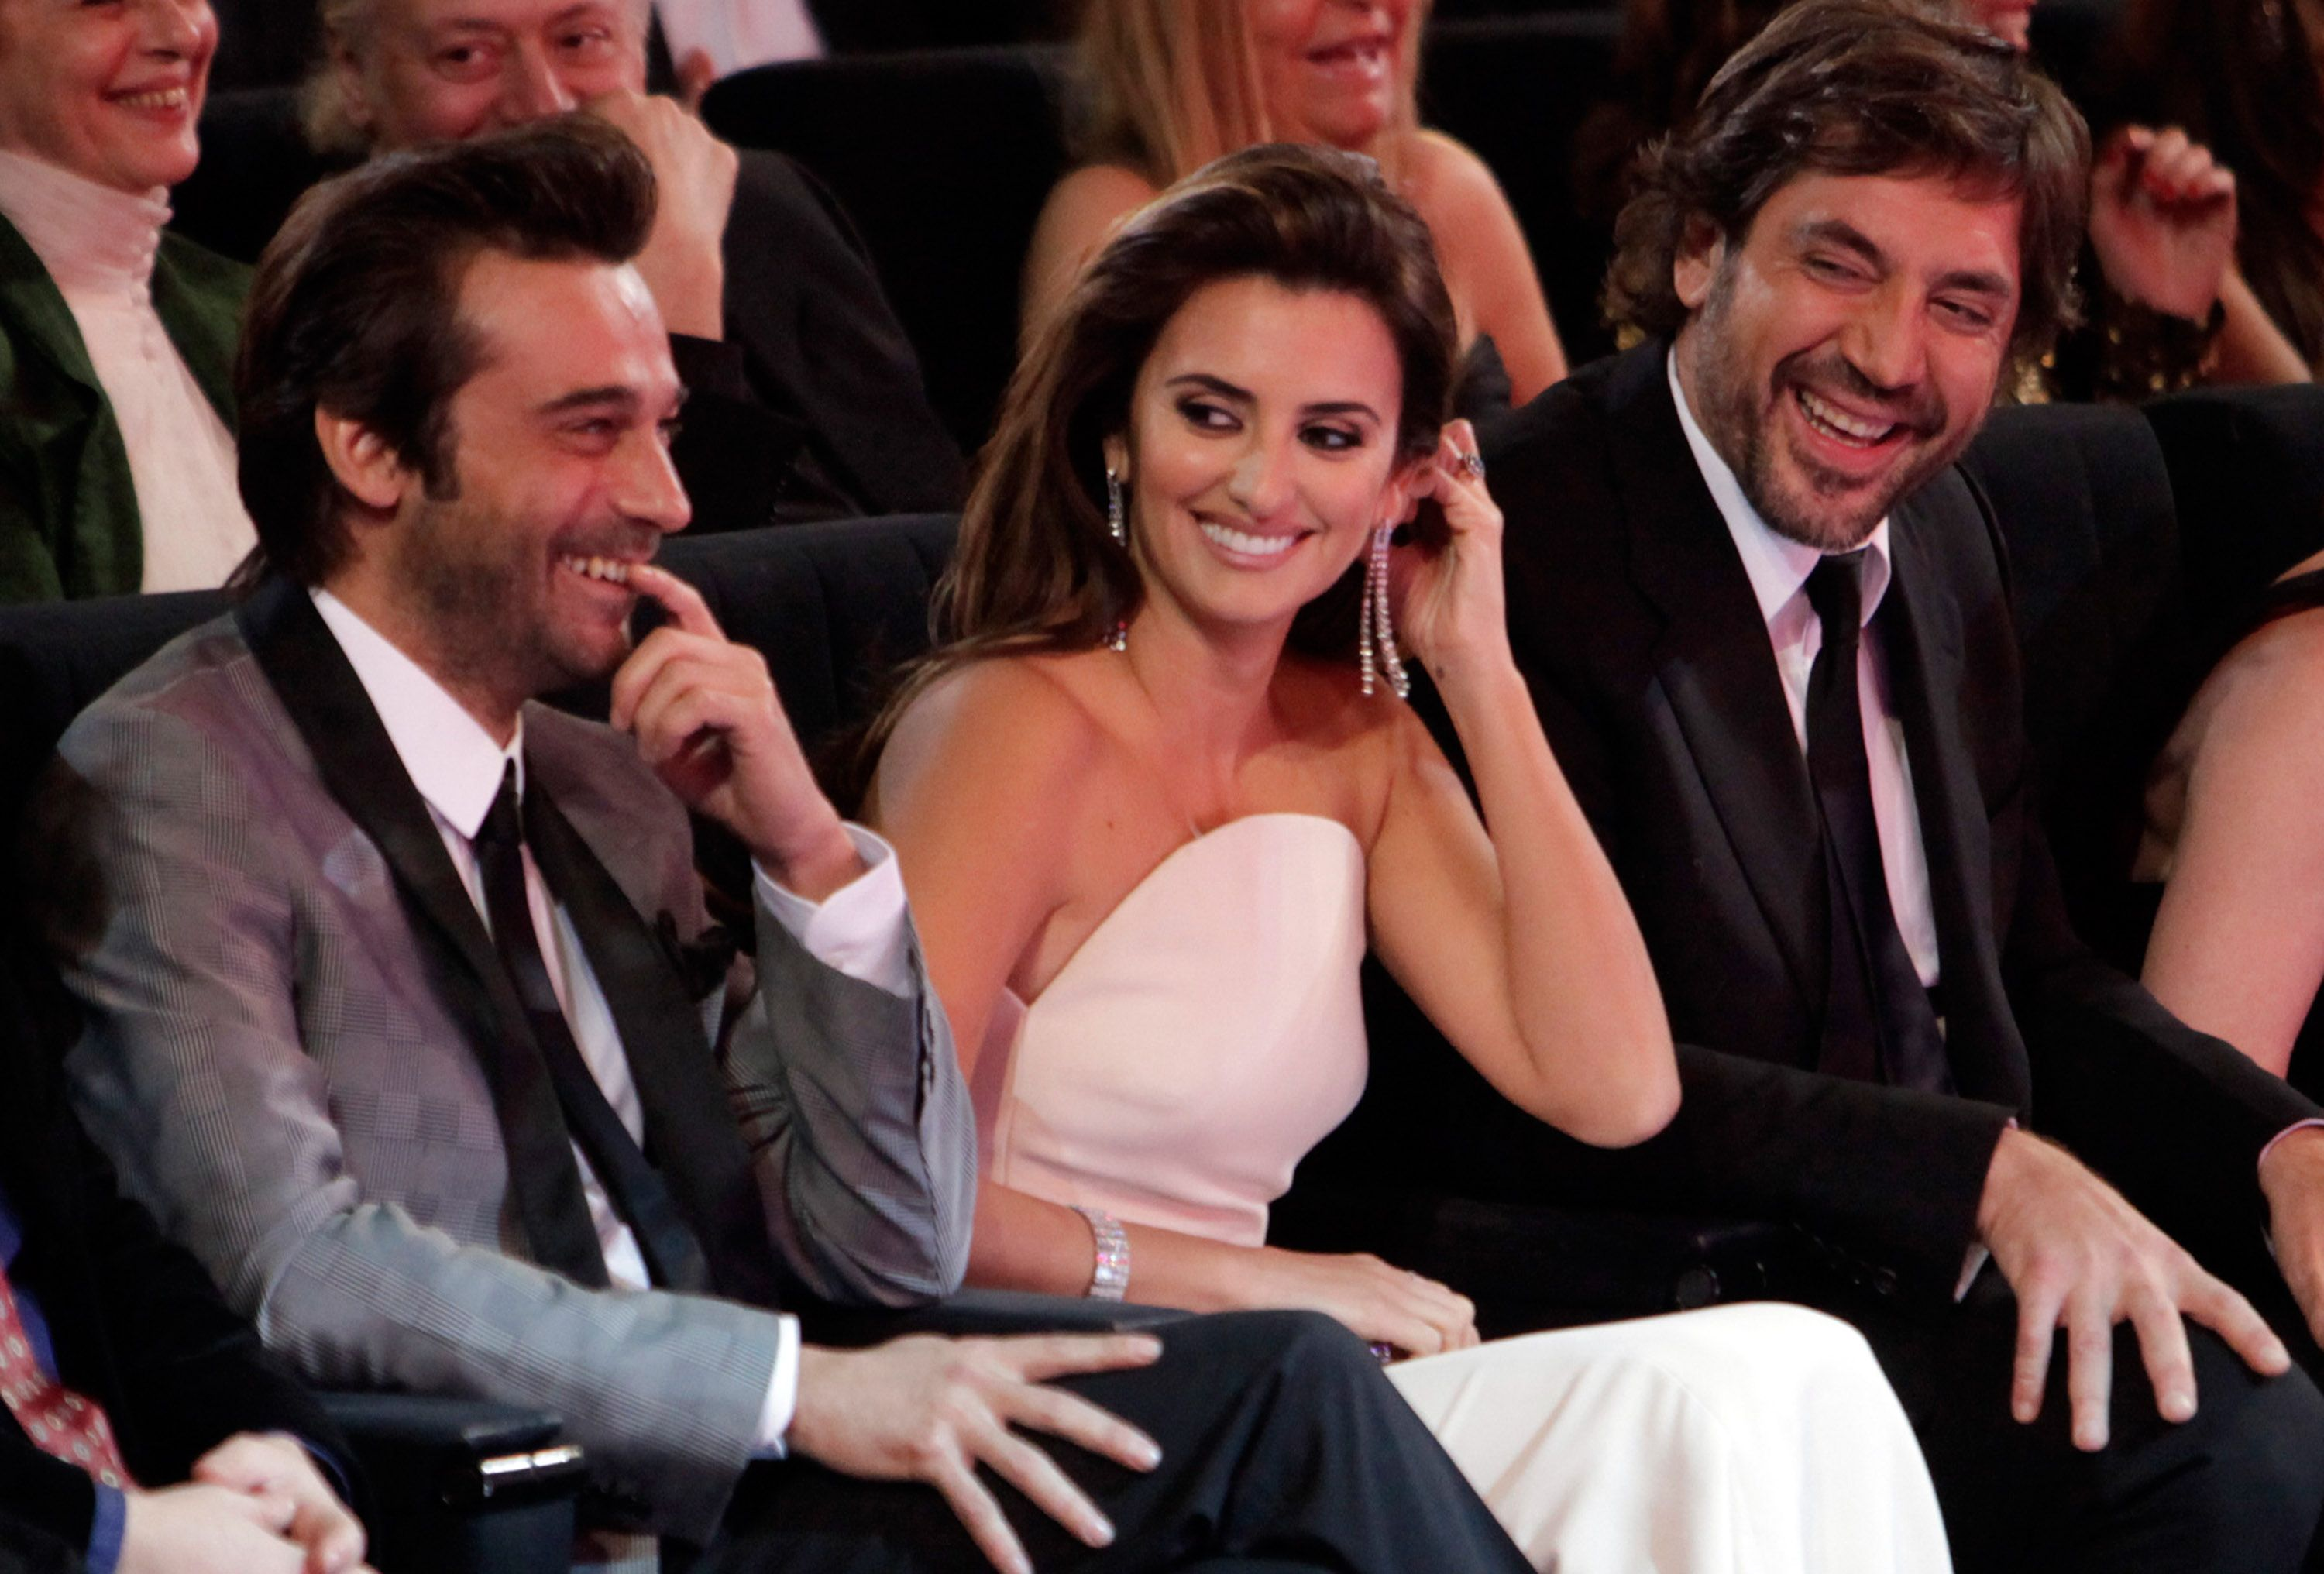 Penelope Cruz and husband seated at an event